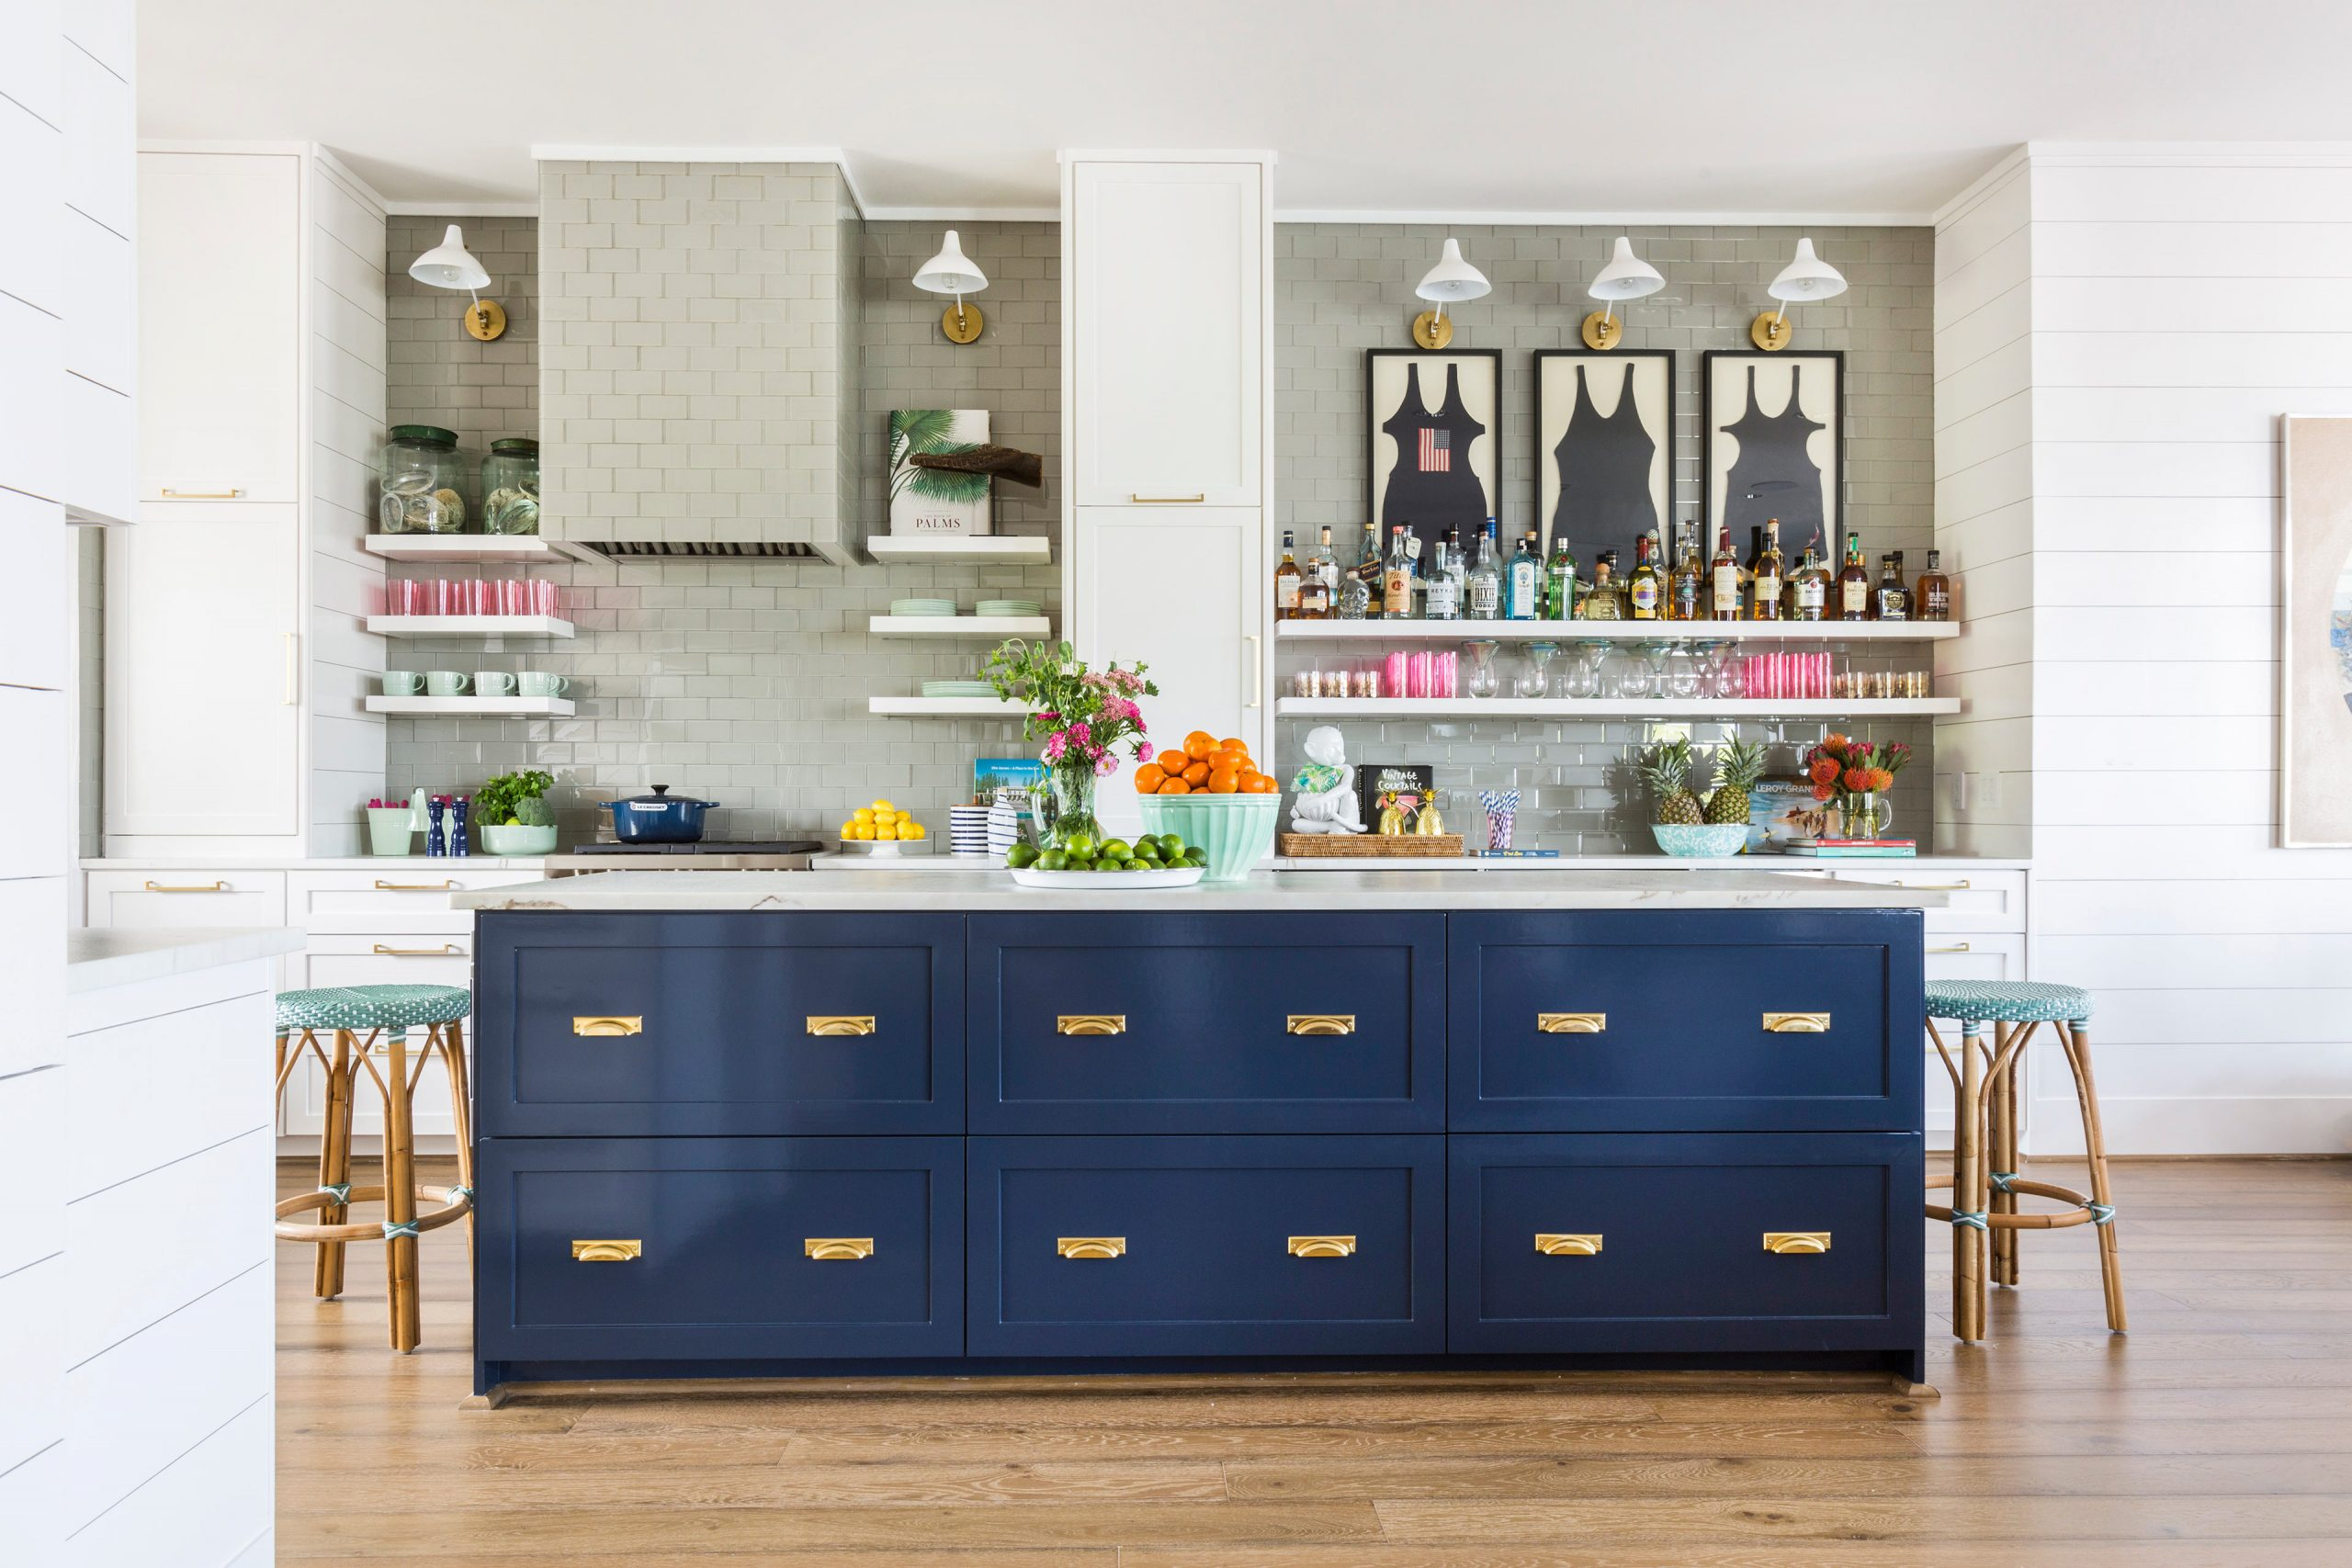 beach kitchen with wood floors and blue island - Creative Tonic